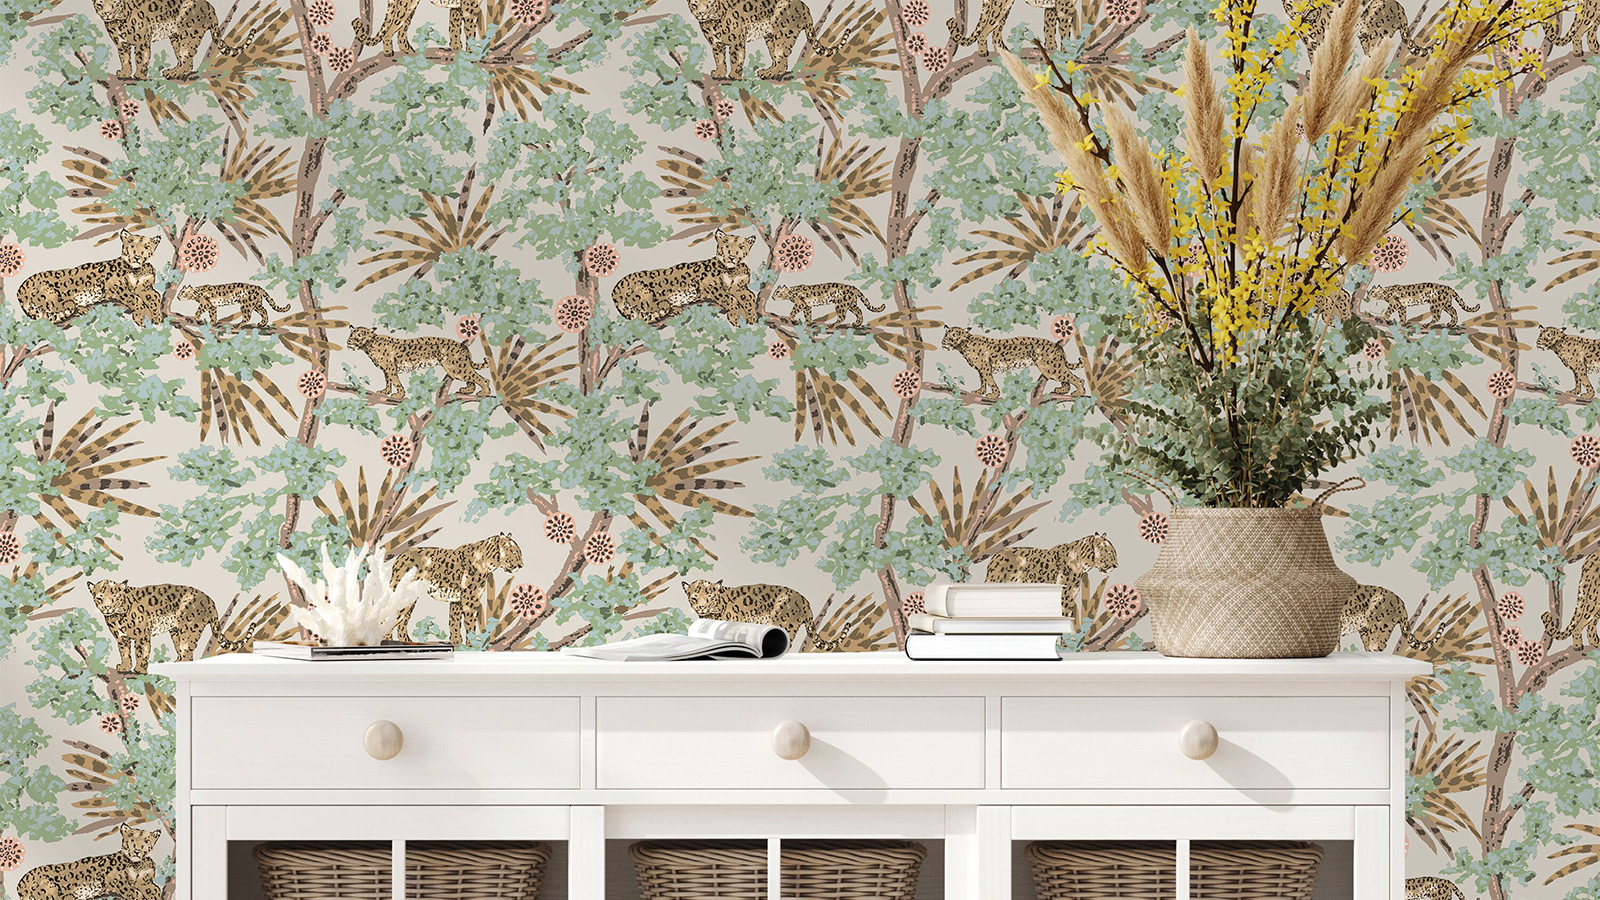 Removable Wallpaper: The Temporary